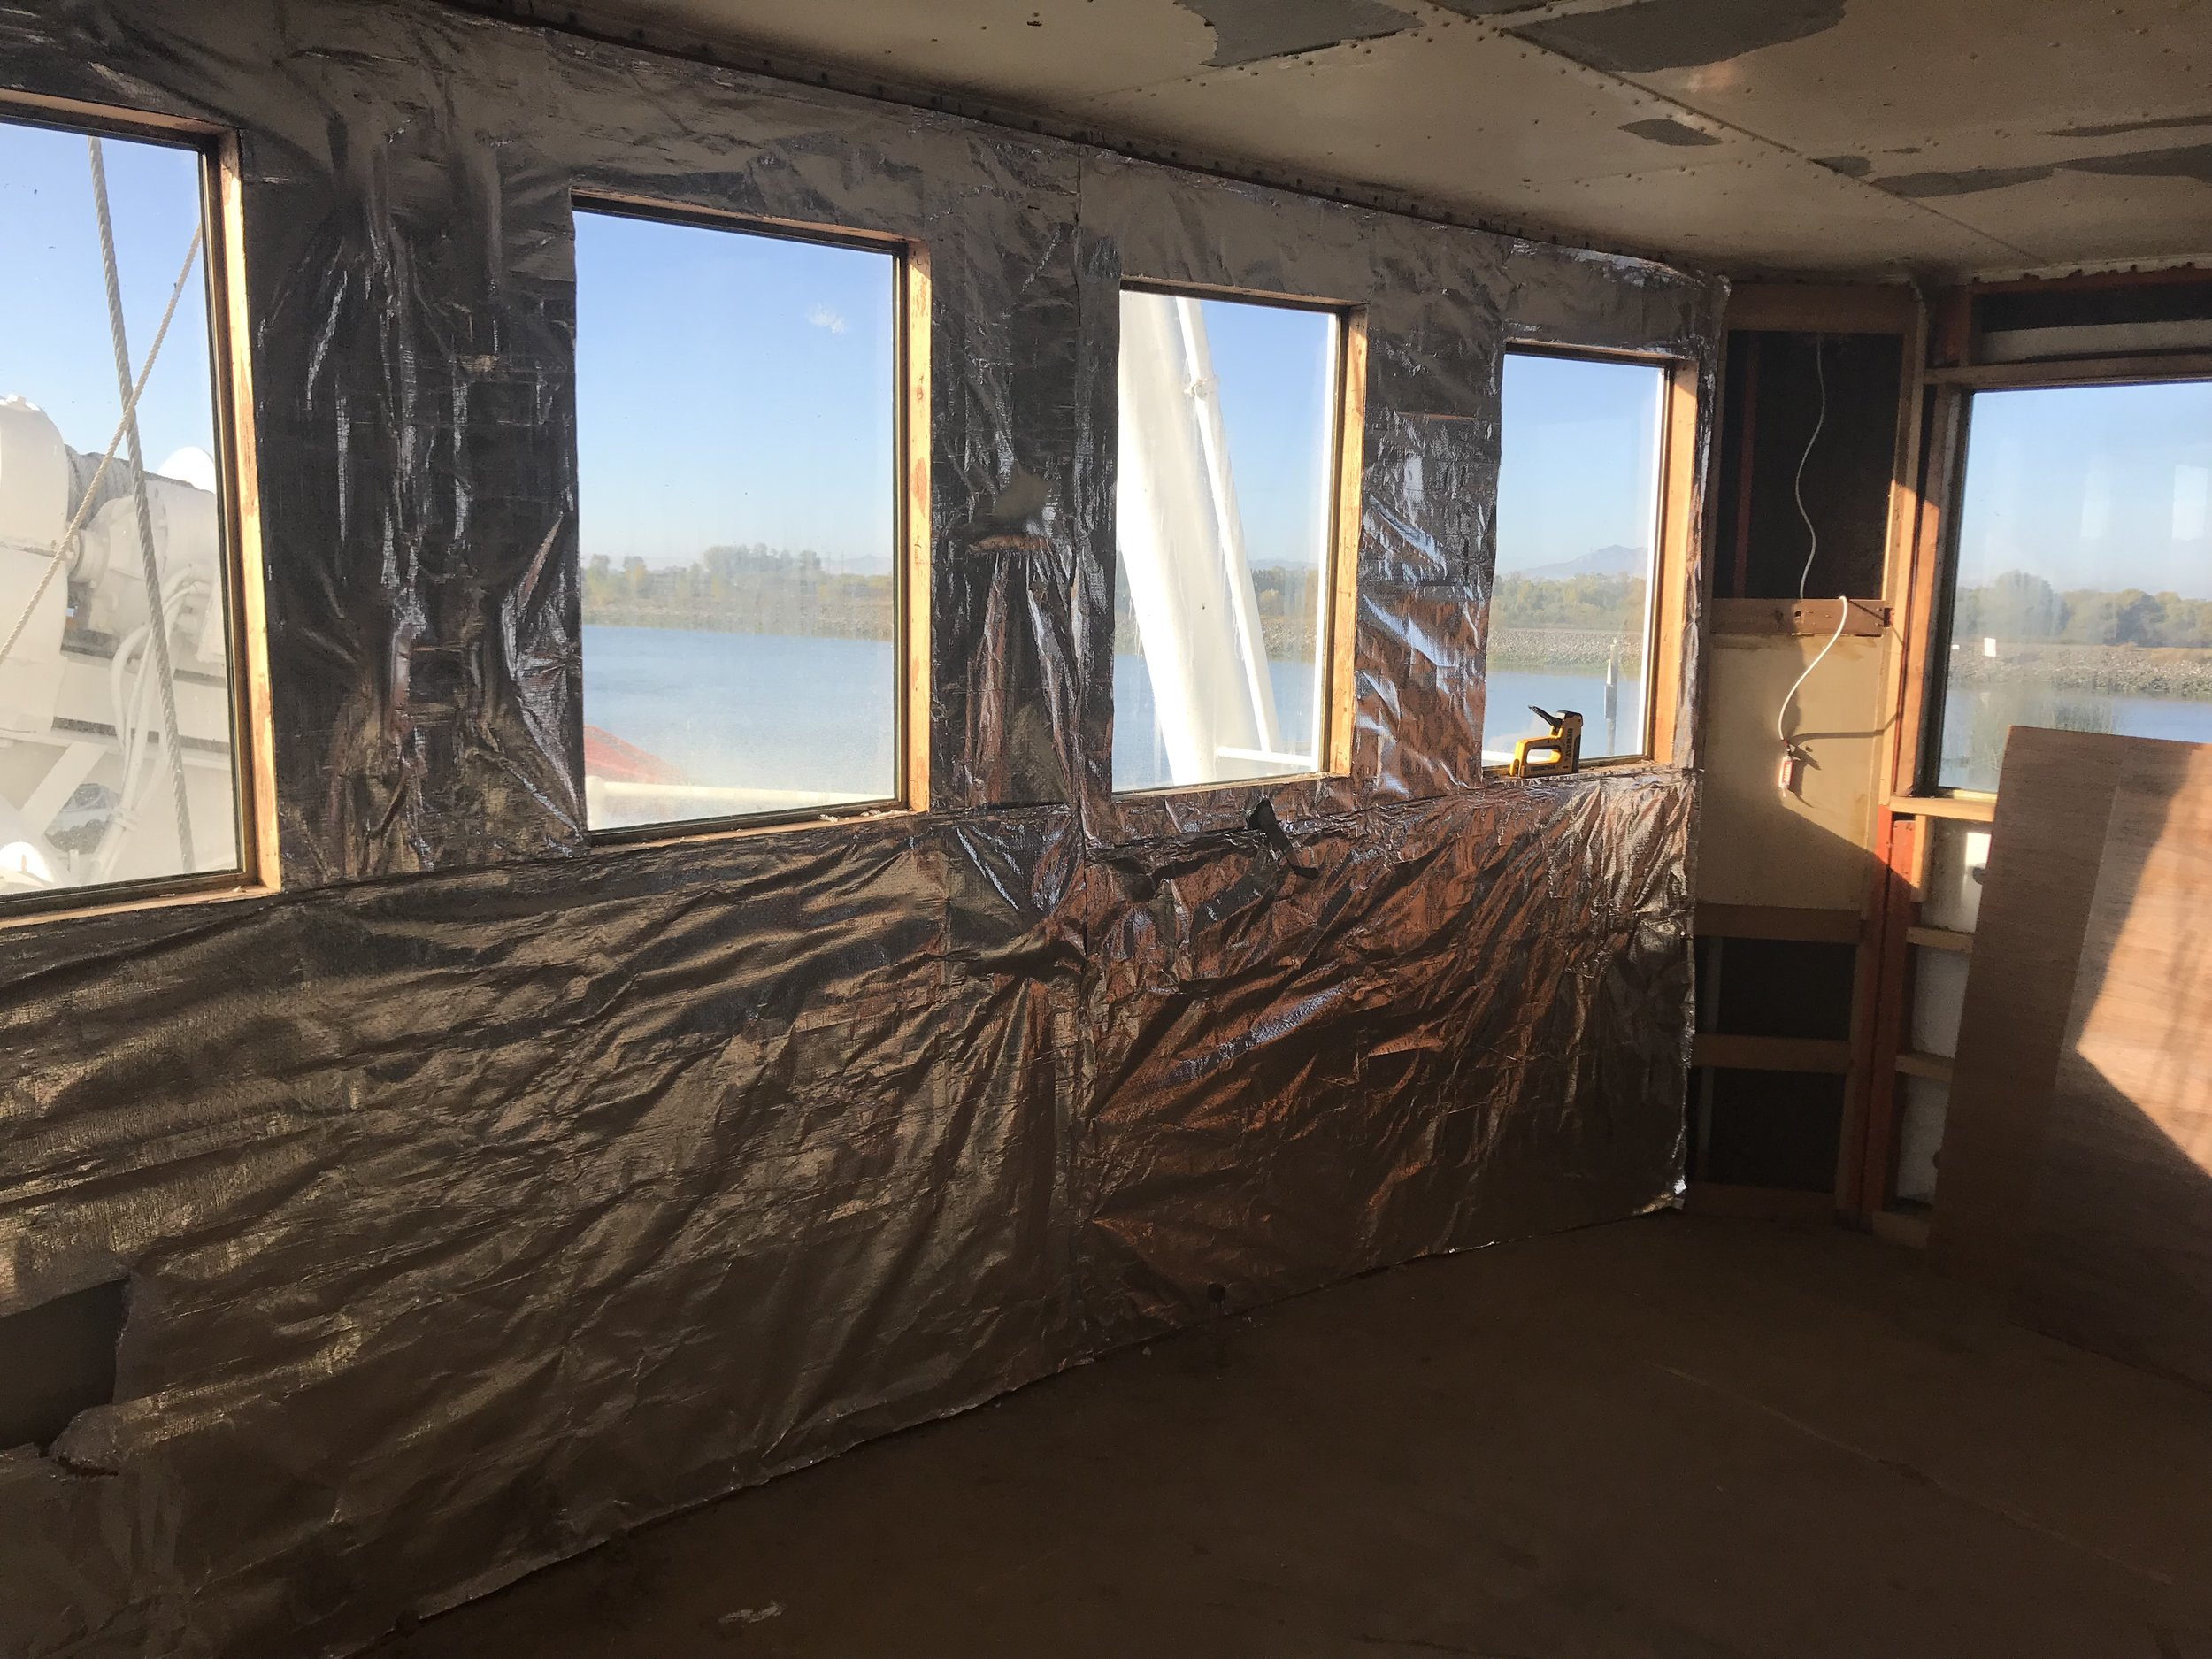 Repurposing begins Fall 2017. Old cork insulation is kept. Closed cell foam sprayed and foil barrier added. Drop ceiling removed.